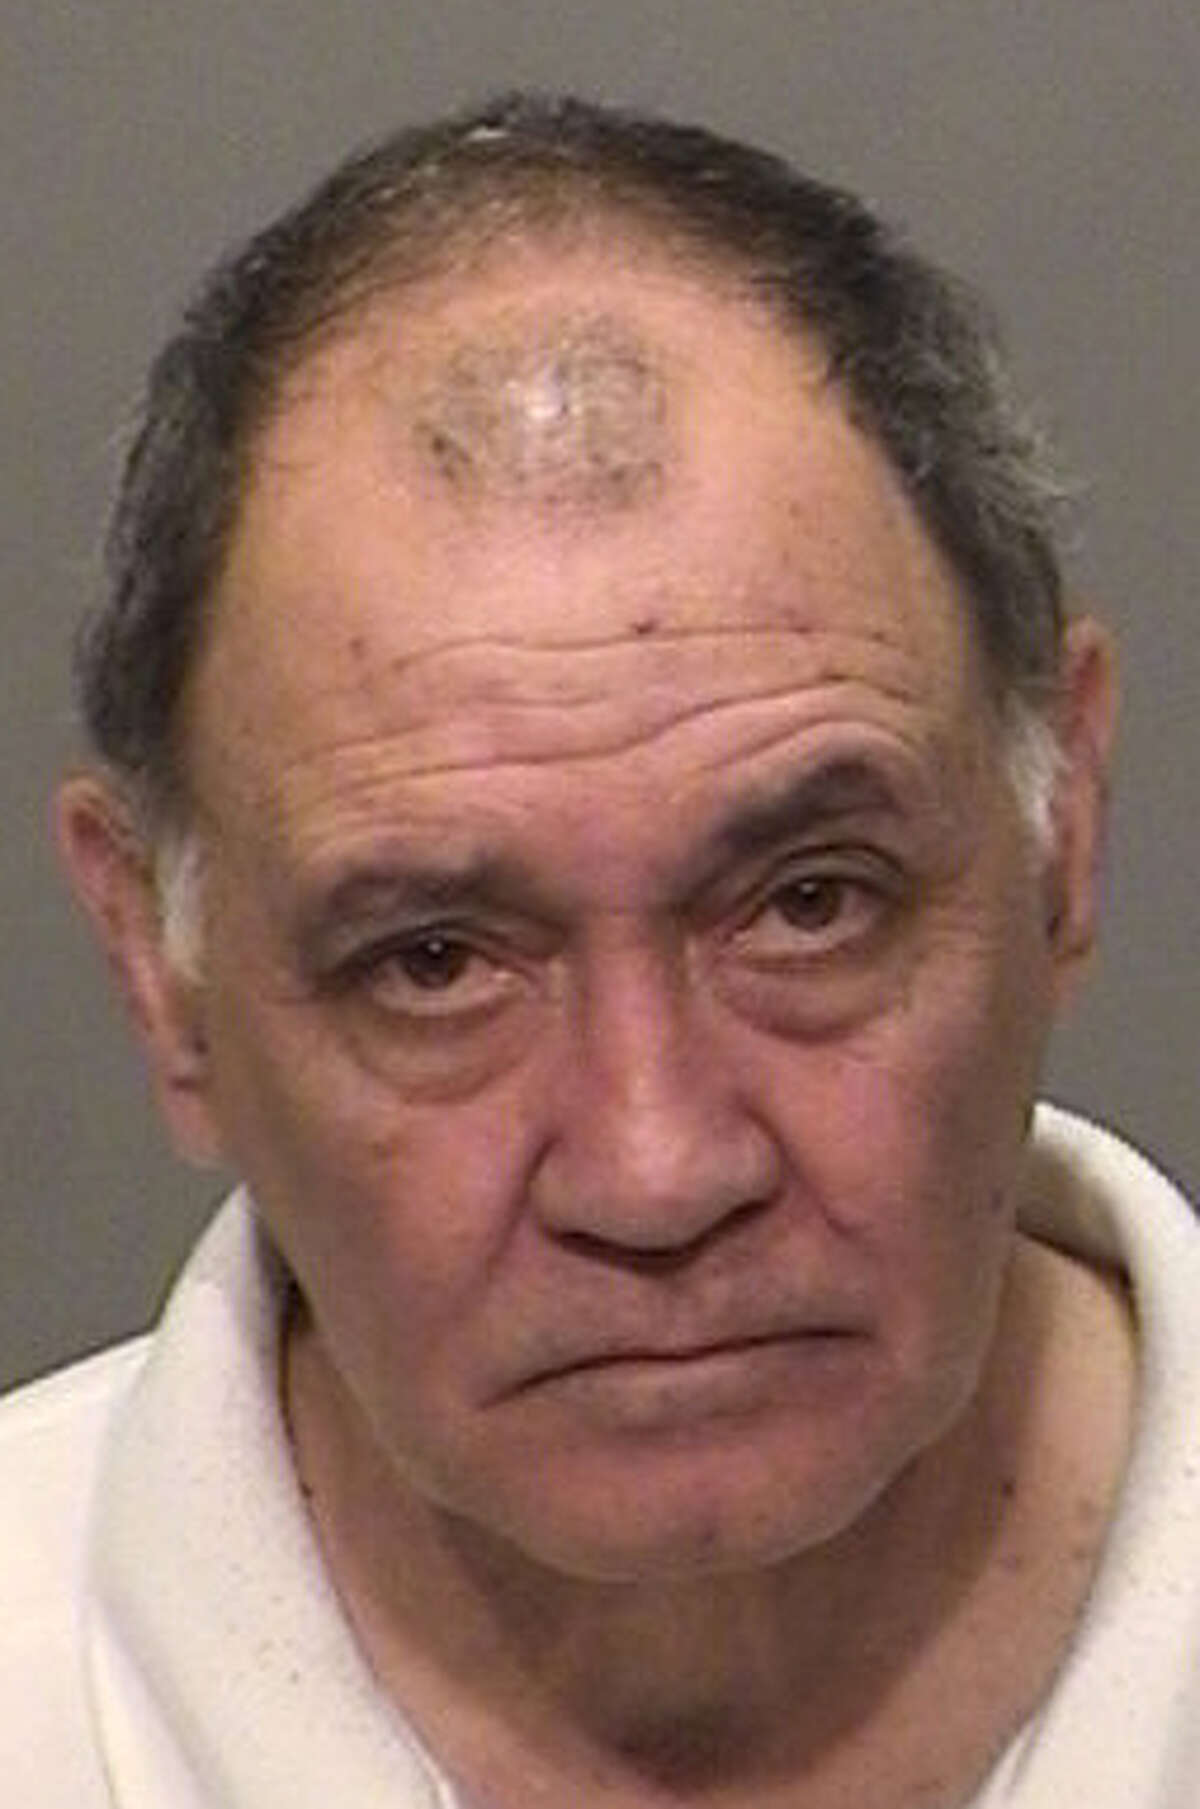 Joseph Antonelli, 64, of Stamford, faces three counts of disorderly conduct for allegedly making threats against President Barack Obama, who stopped in Stamford and Greenwich last week. Photo provided by Greenwich police.